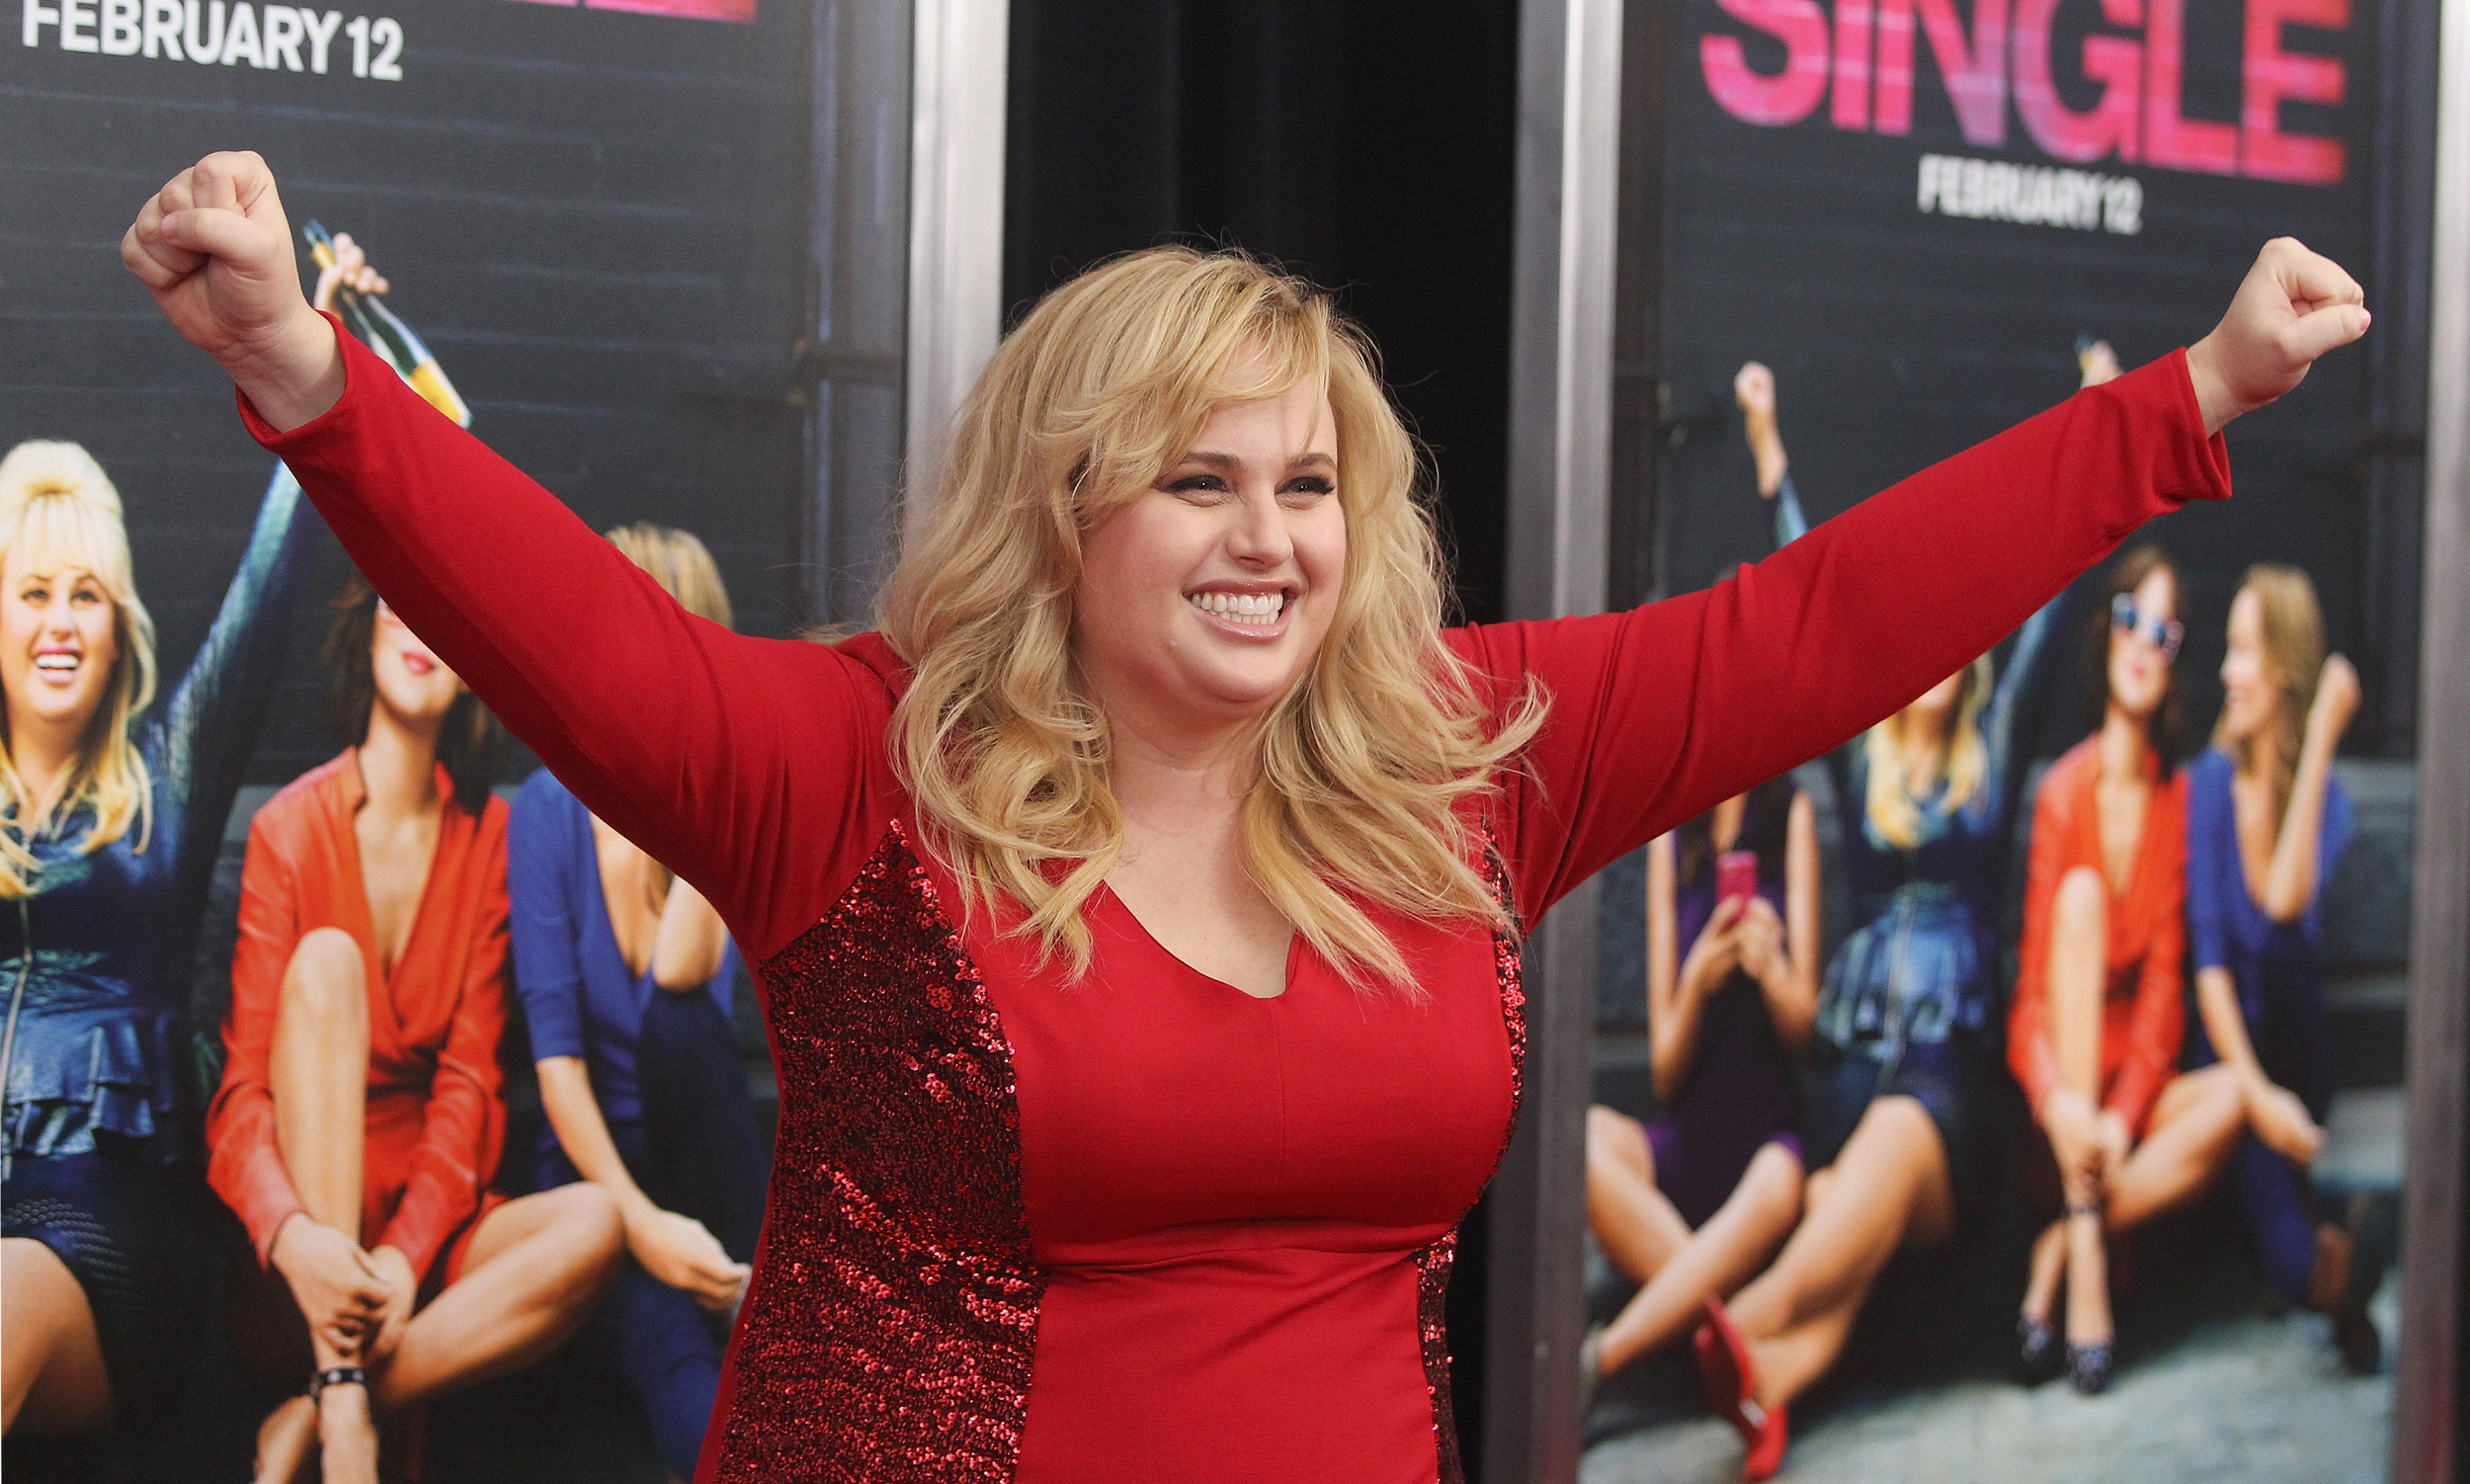 How To Be Single Source Link Rebel Wilson Reveals Her Awkward,  'sporty' First Head Shot Amazon: